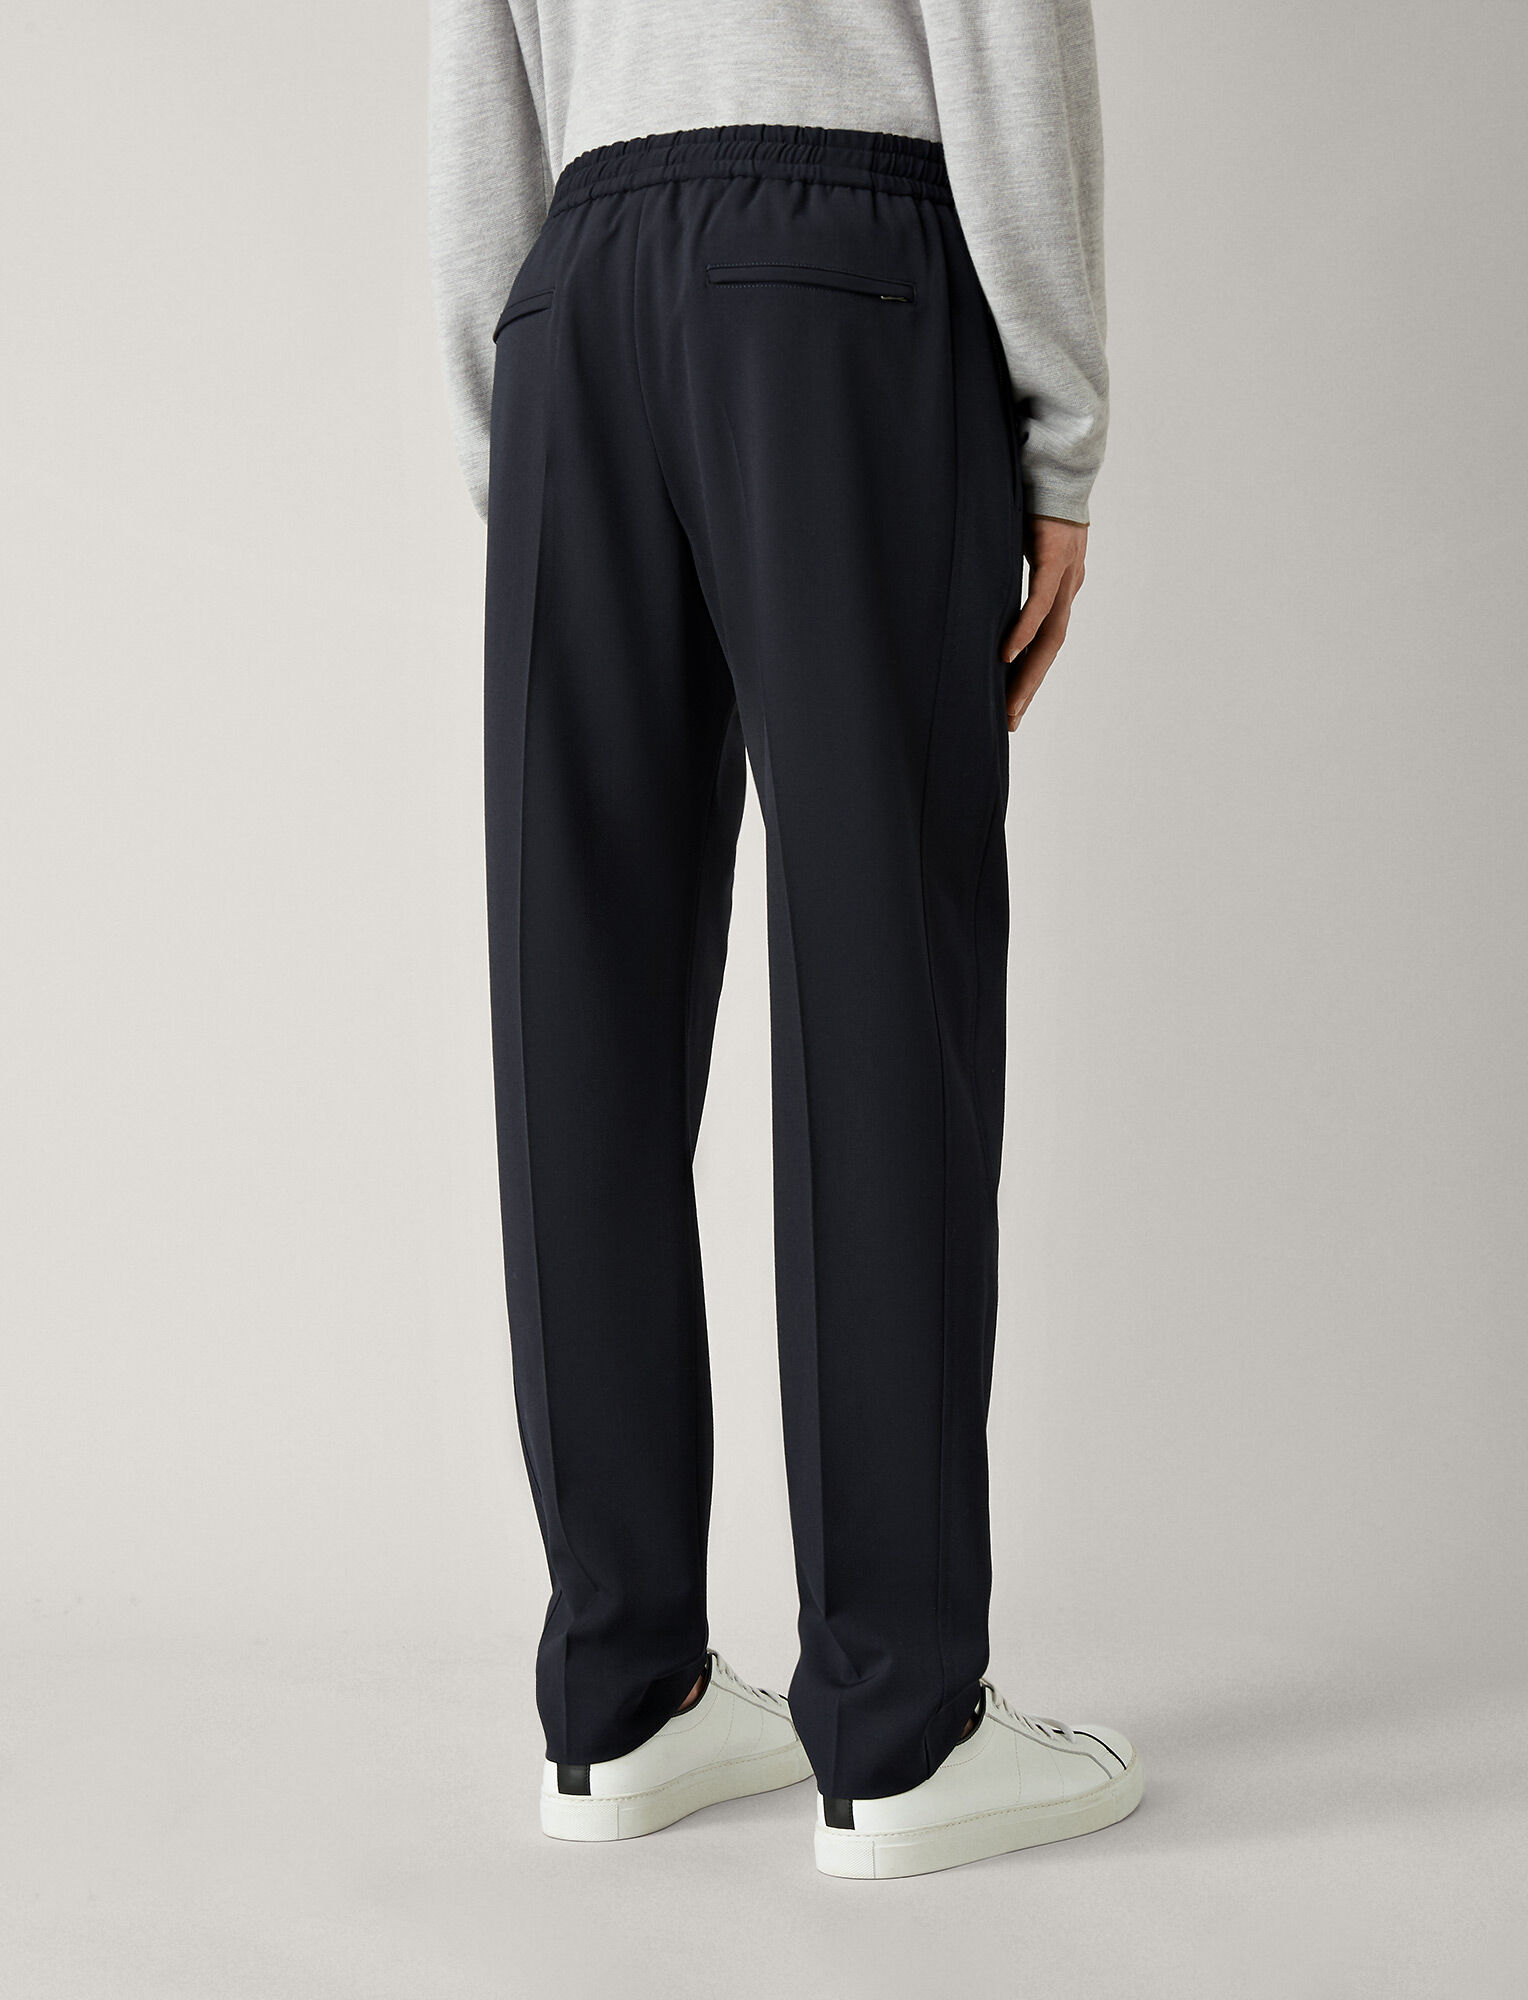 Joseph, Pantalon Ettrick en laine techno stretch, in NAVY